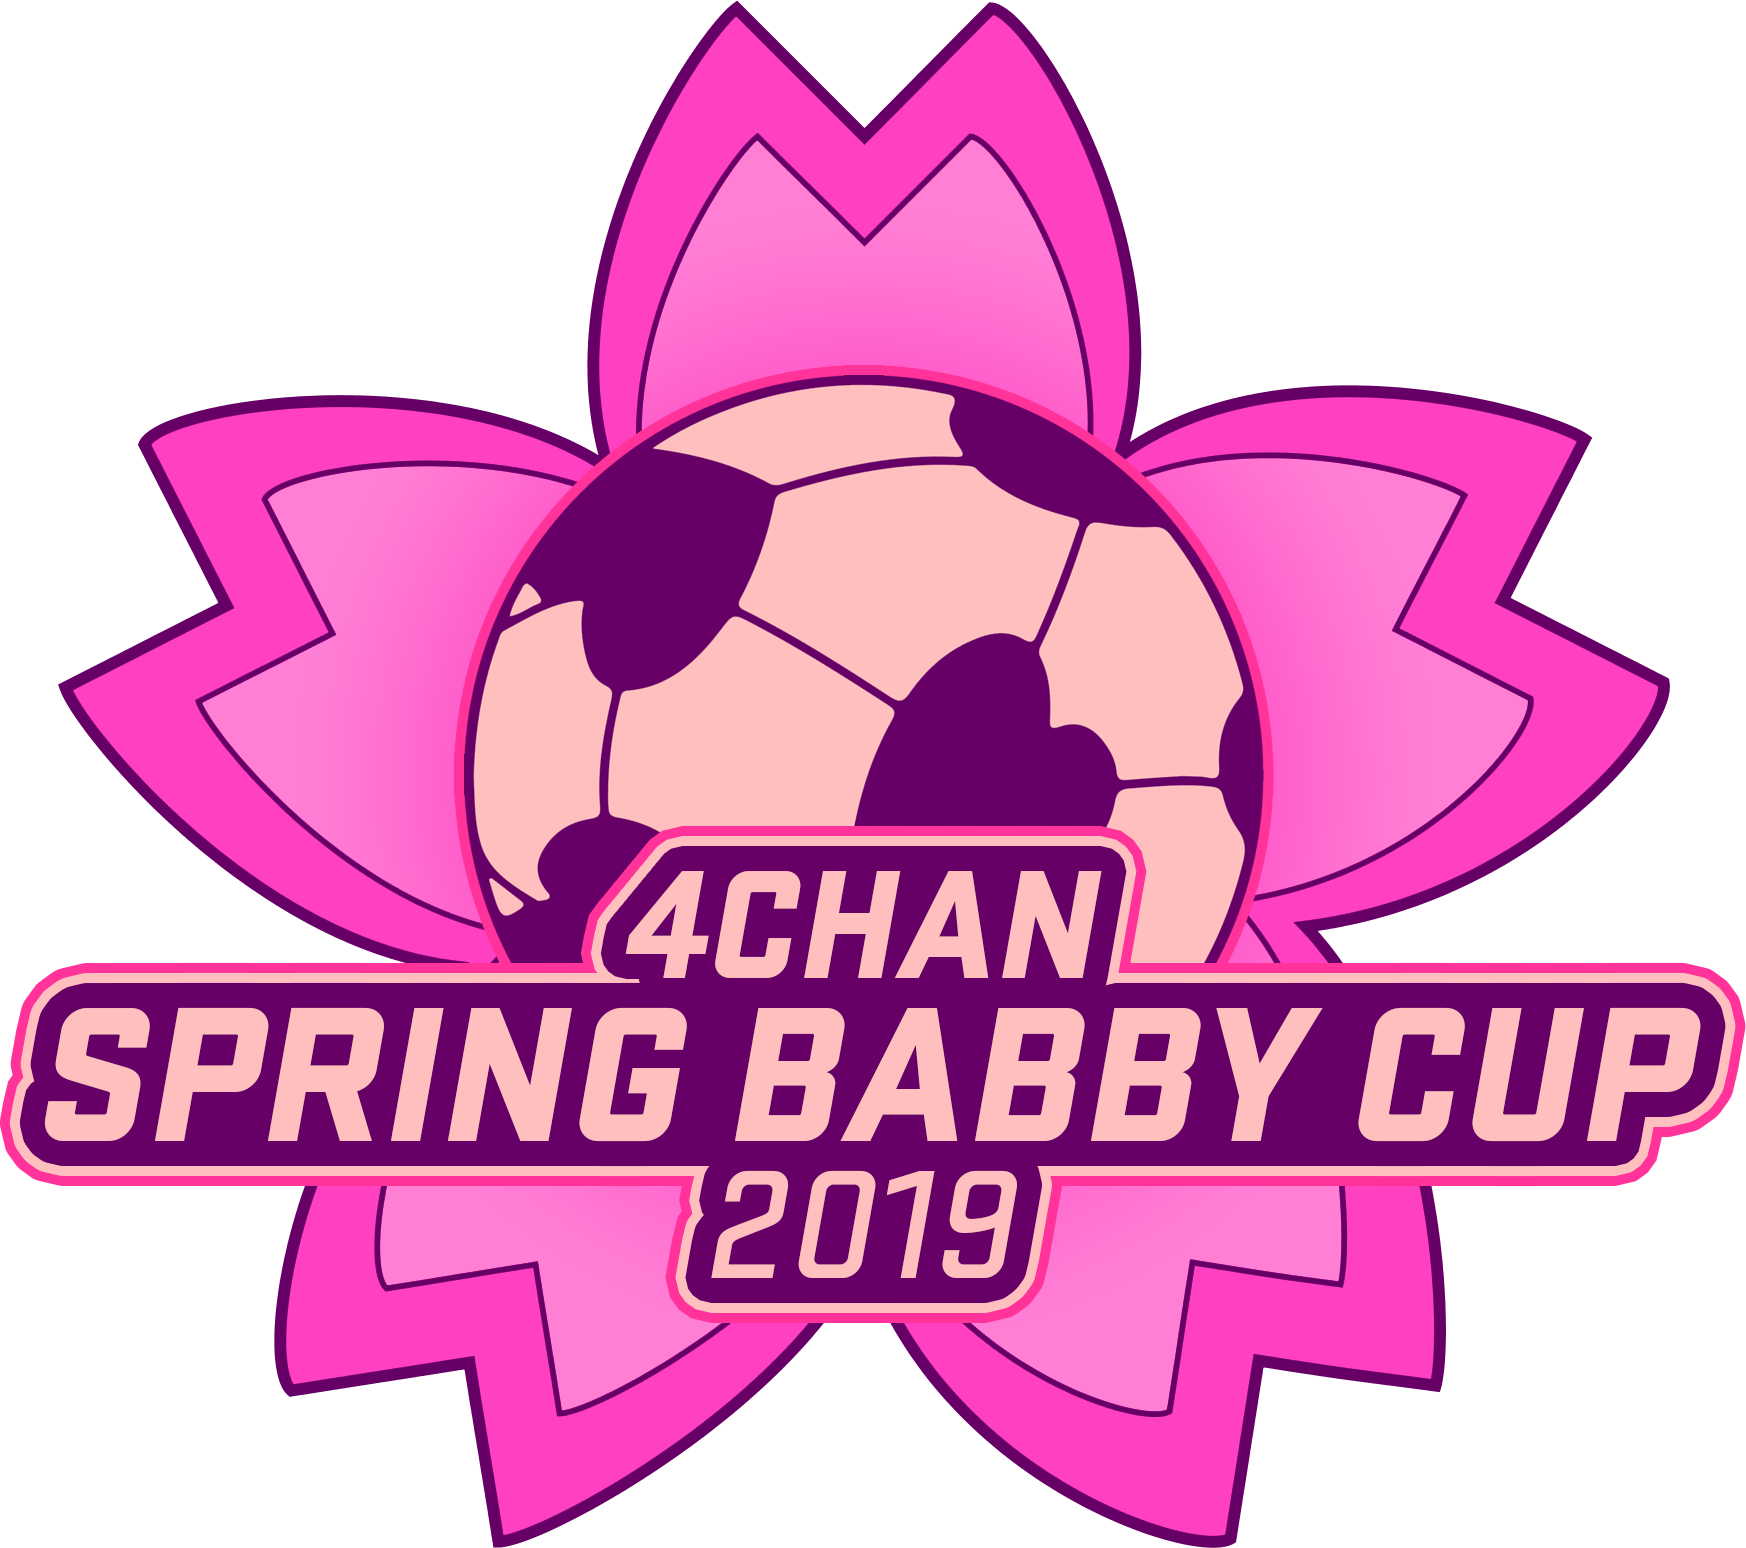 2019 4chan Spring Babby Cup